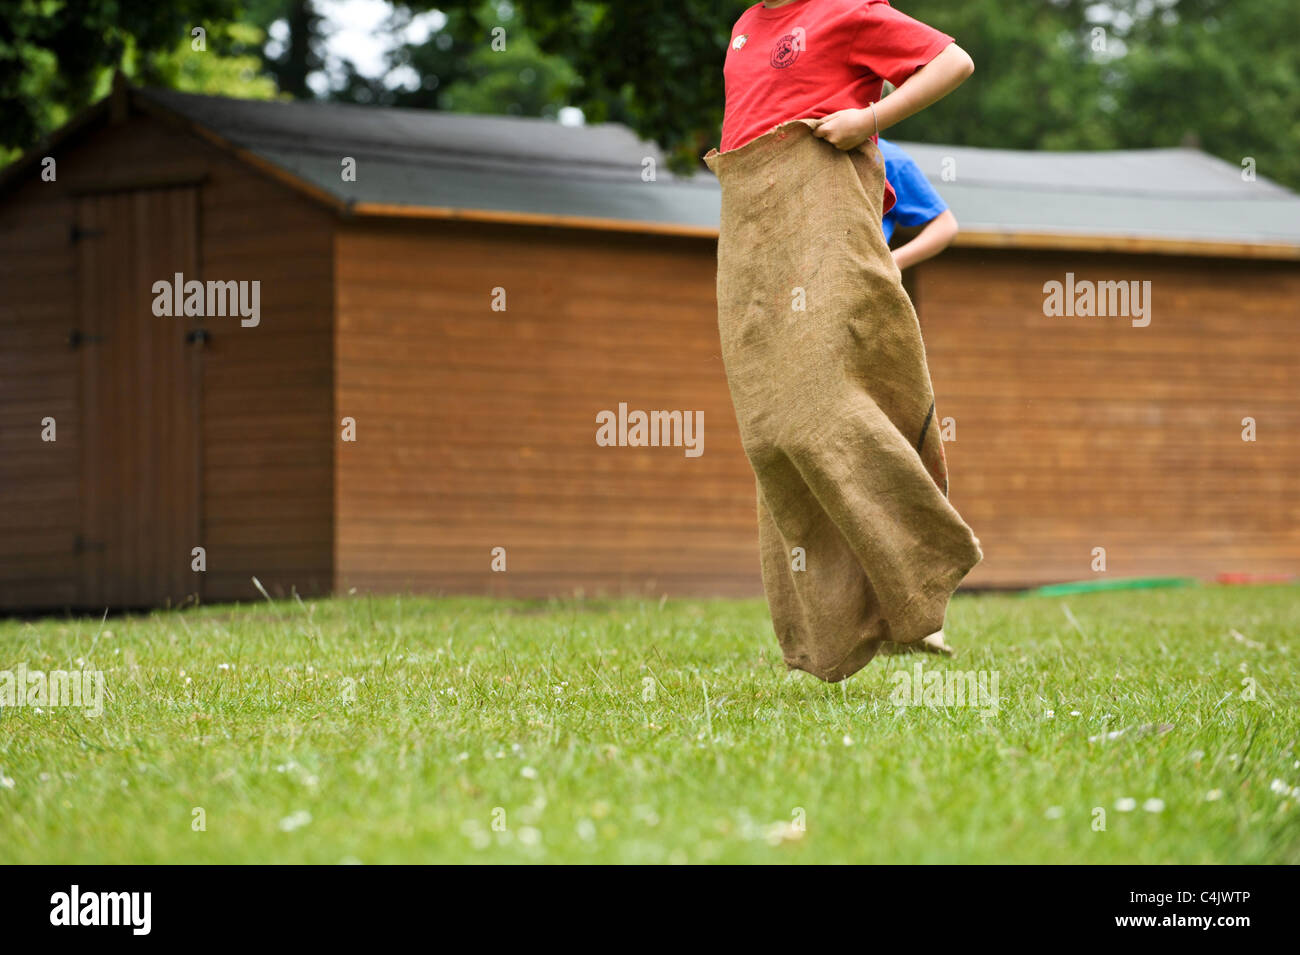 two school children in a traditional sack race at school sports day jumping up off the grass in  red and blue house - Stock Image